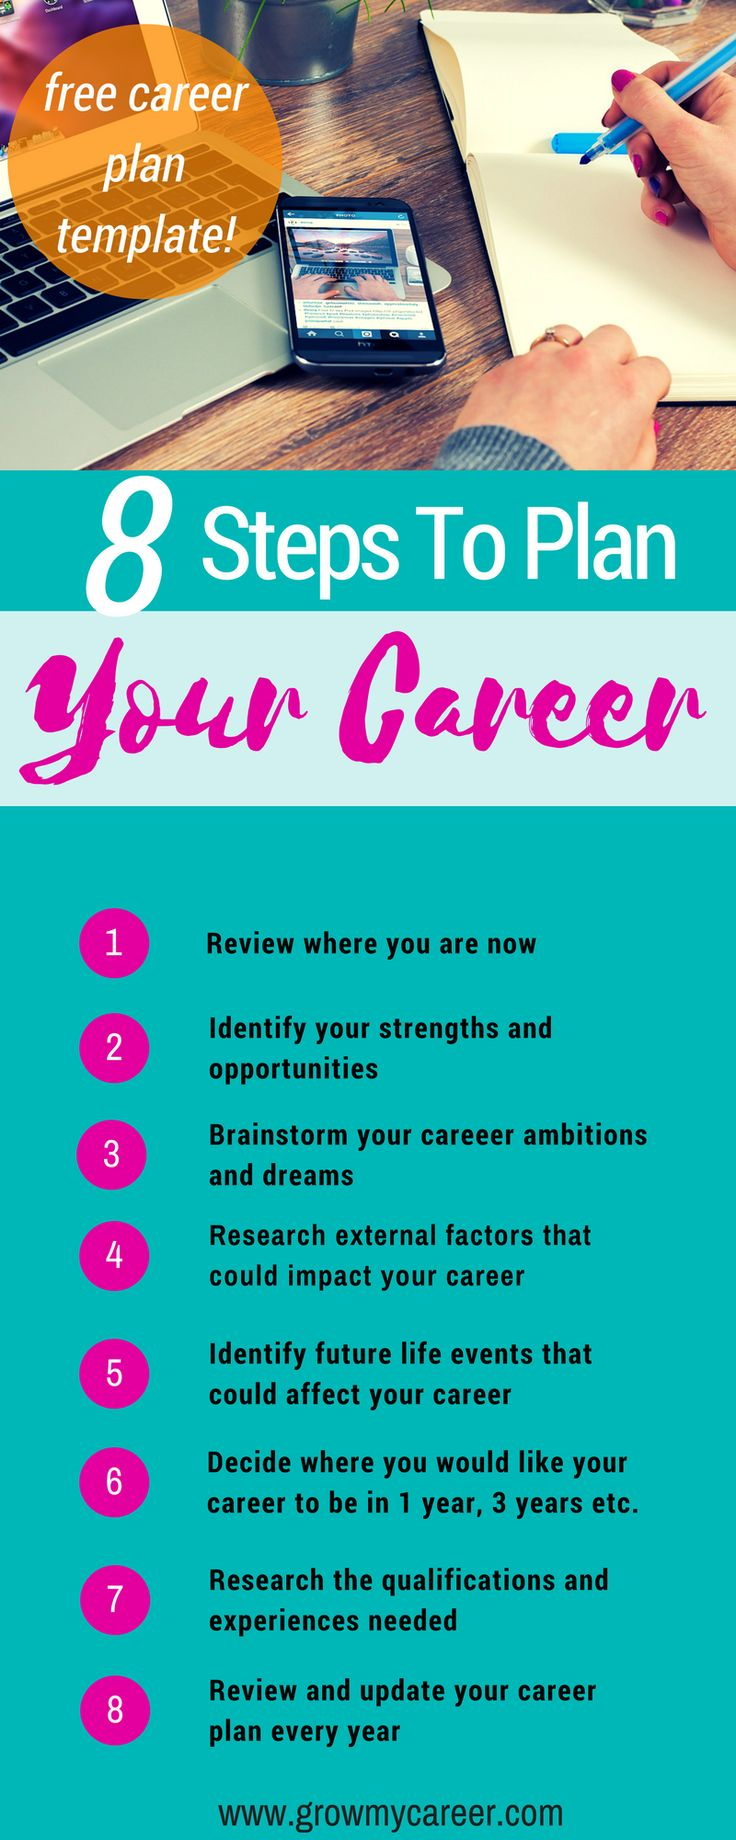 Download this robust career plan template and take control of your career and earning potential!